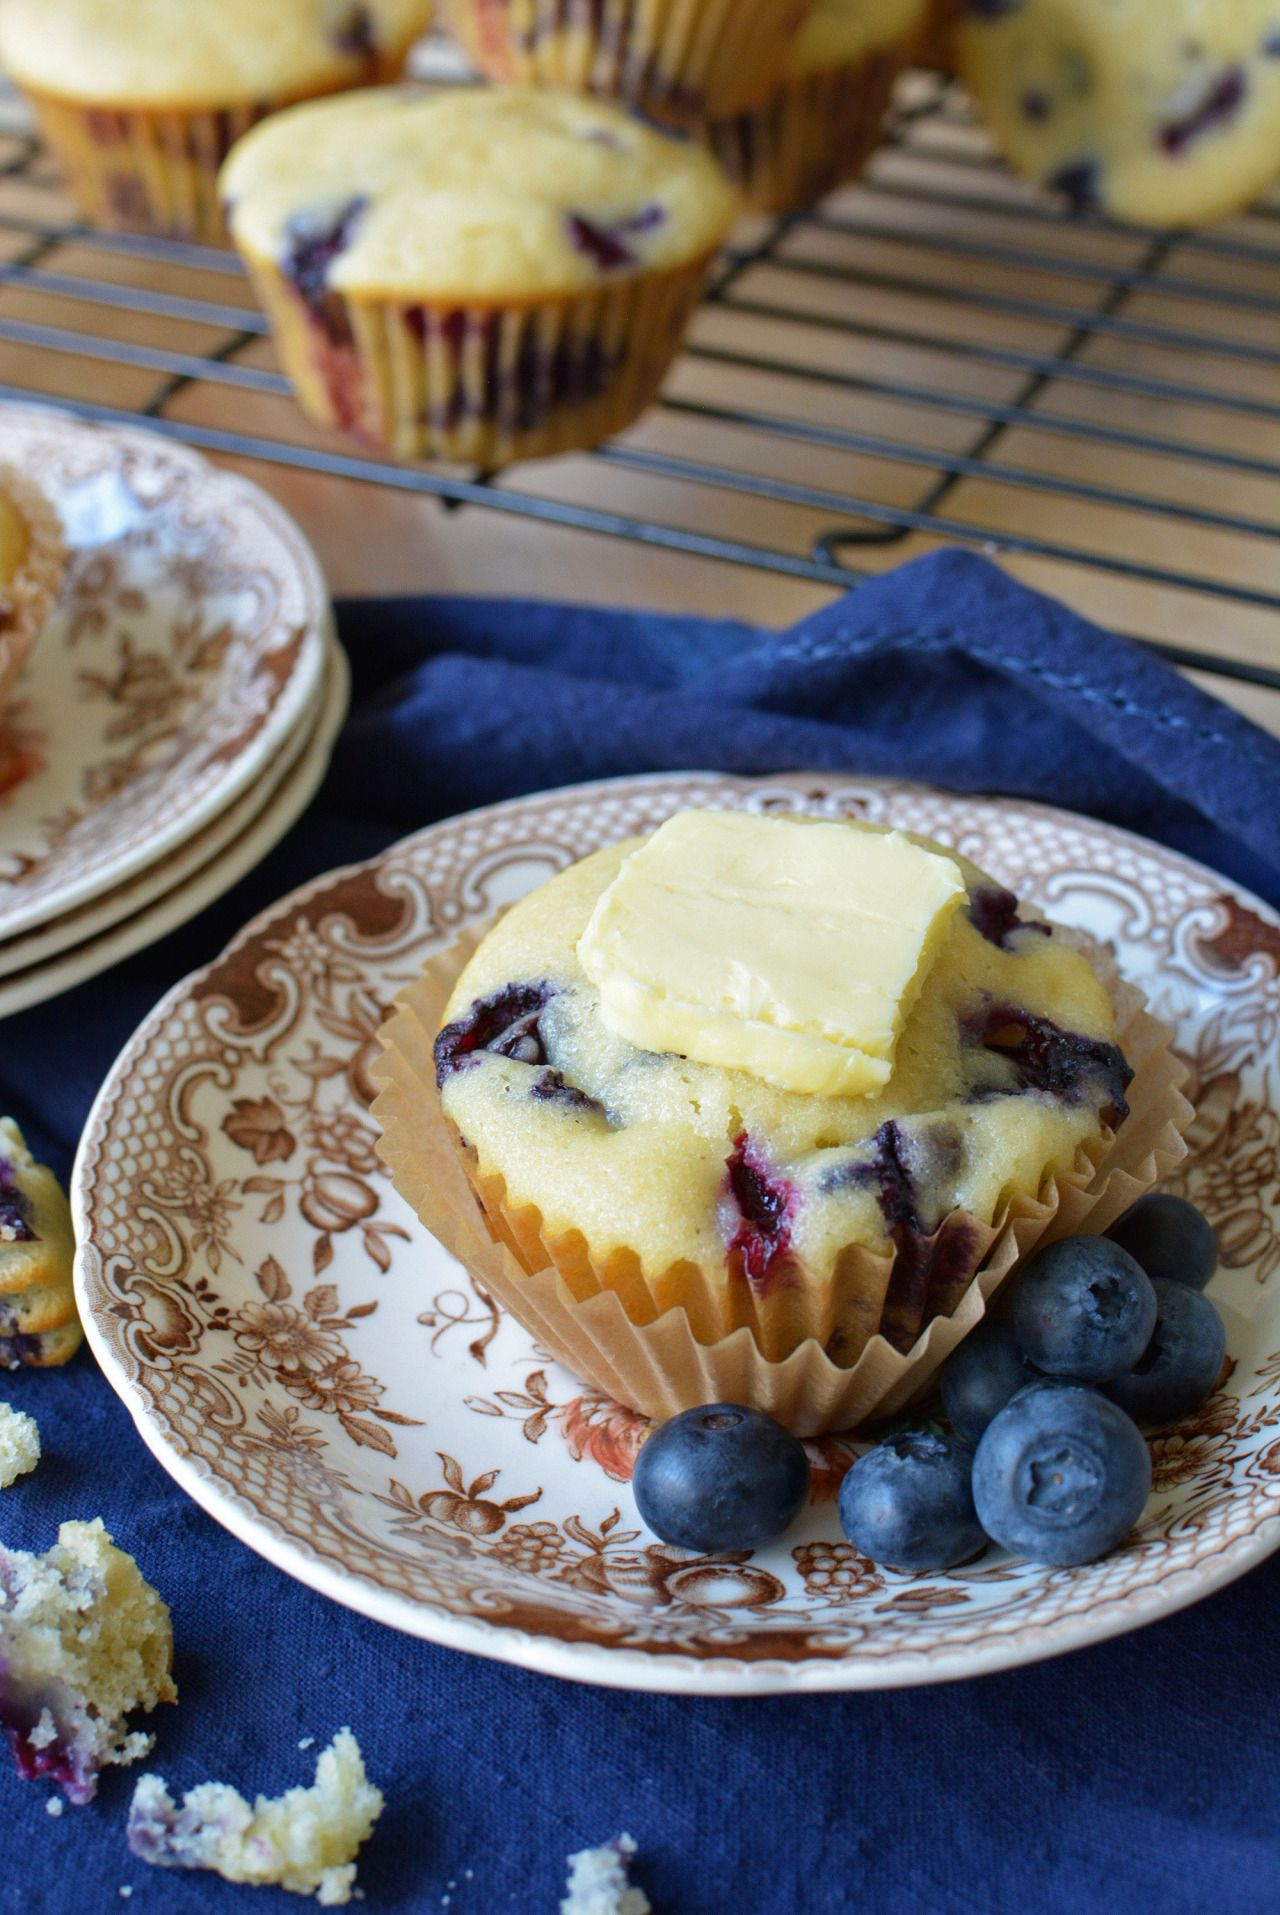 """""""Sweet Blueberry Muffins- These deliciously sweet blueberry muffins are a favorite family recipe. """" Congratulations simpleseasonal for having the winning submission August 22, 2016!"""